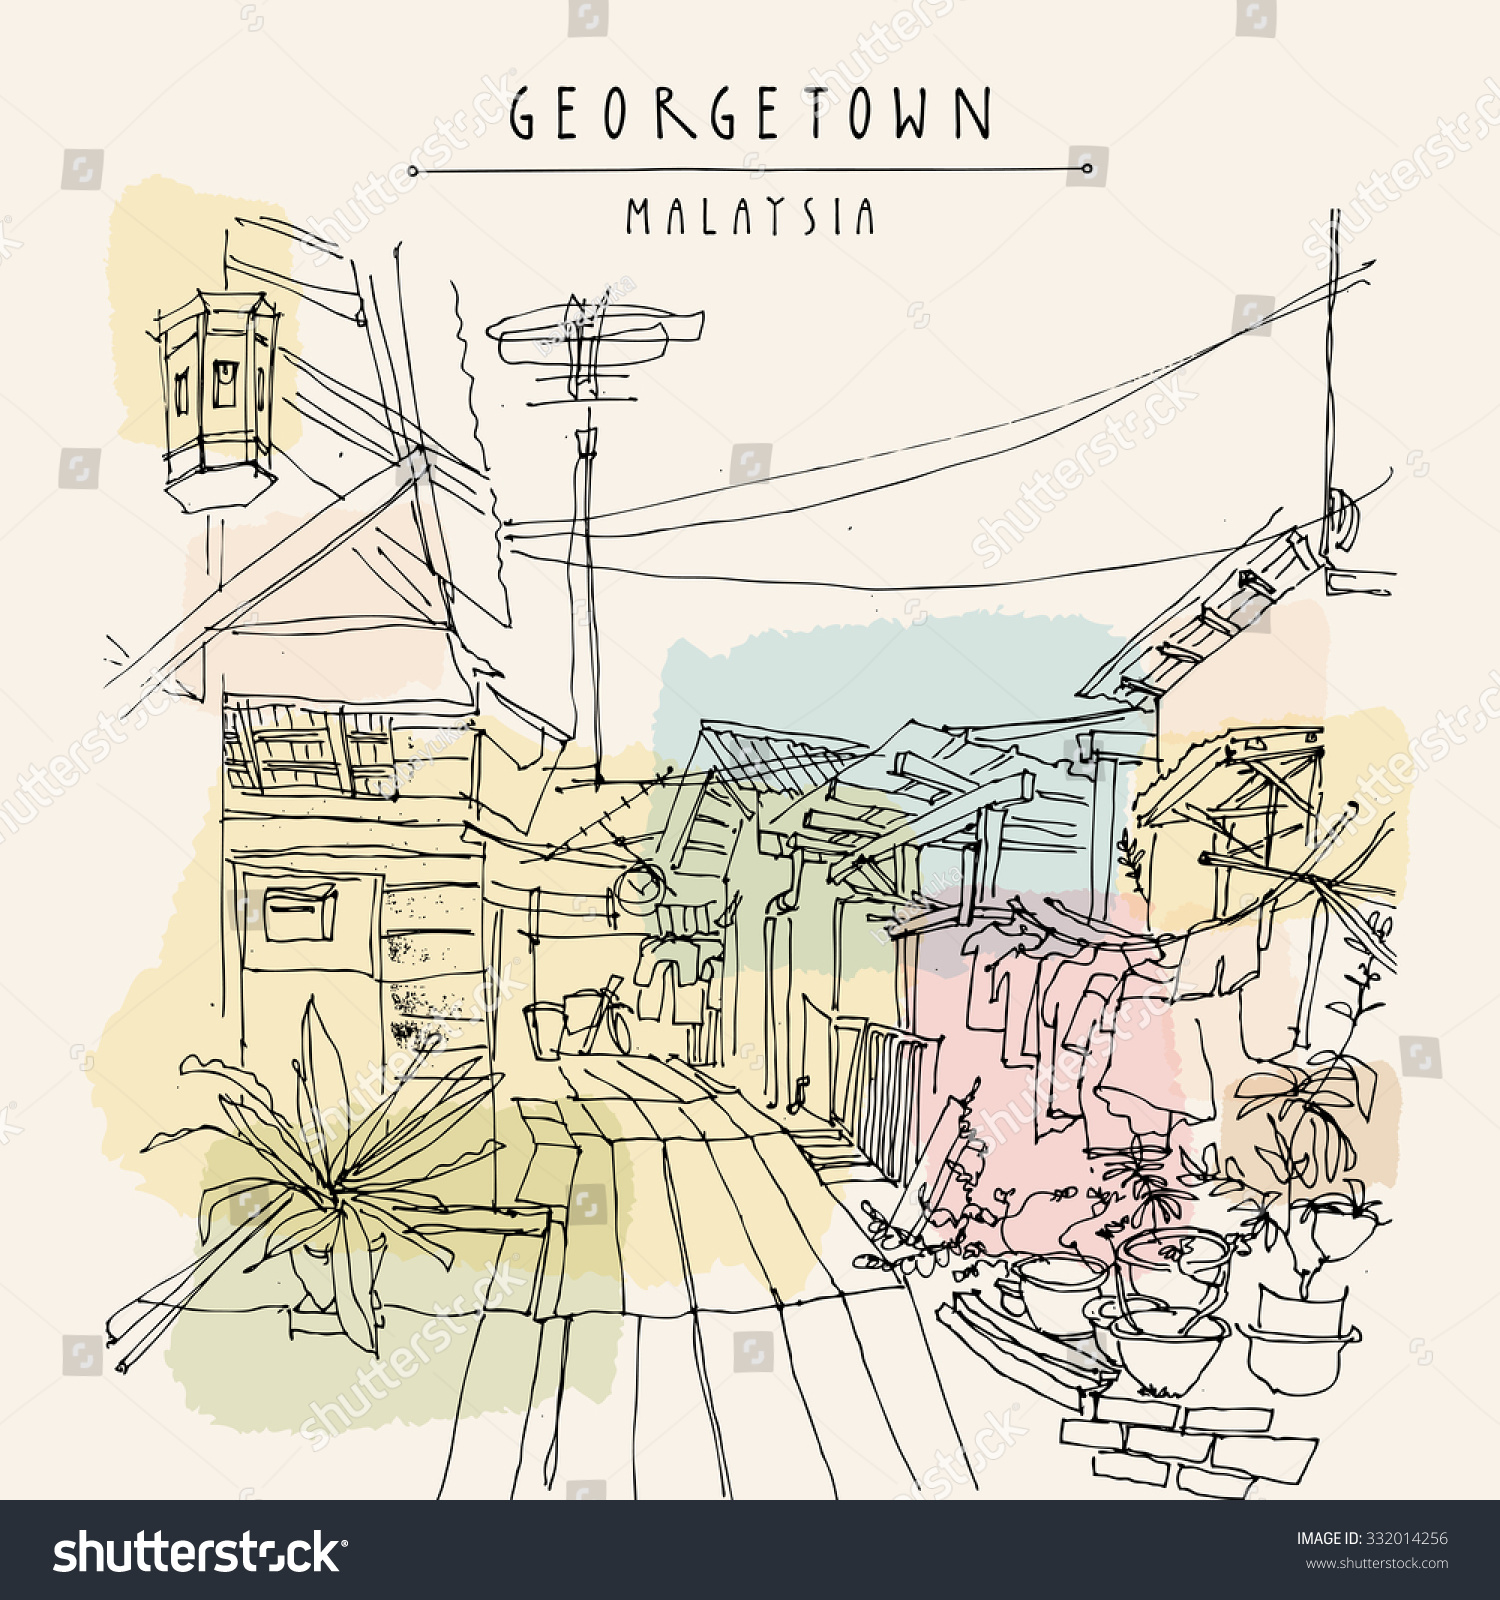 Georgetown, Malaysia, Southeast Asia. Traditional wooden houses on water,  plants, electric wires. Artistic drawing. Touristic postcard template in  vector ...